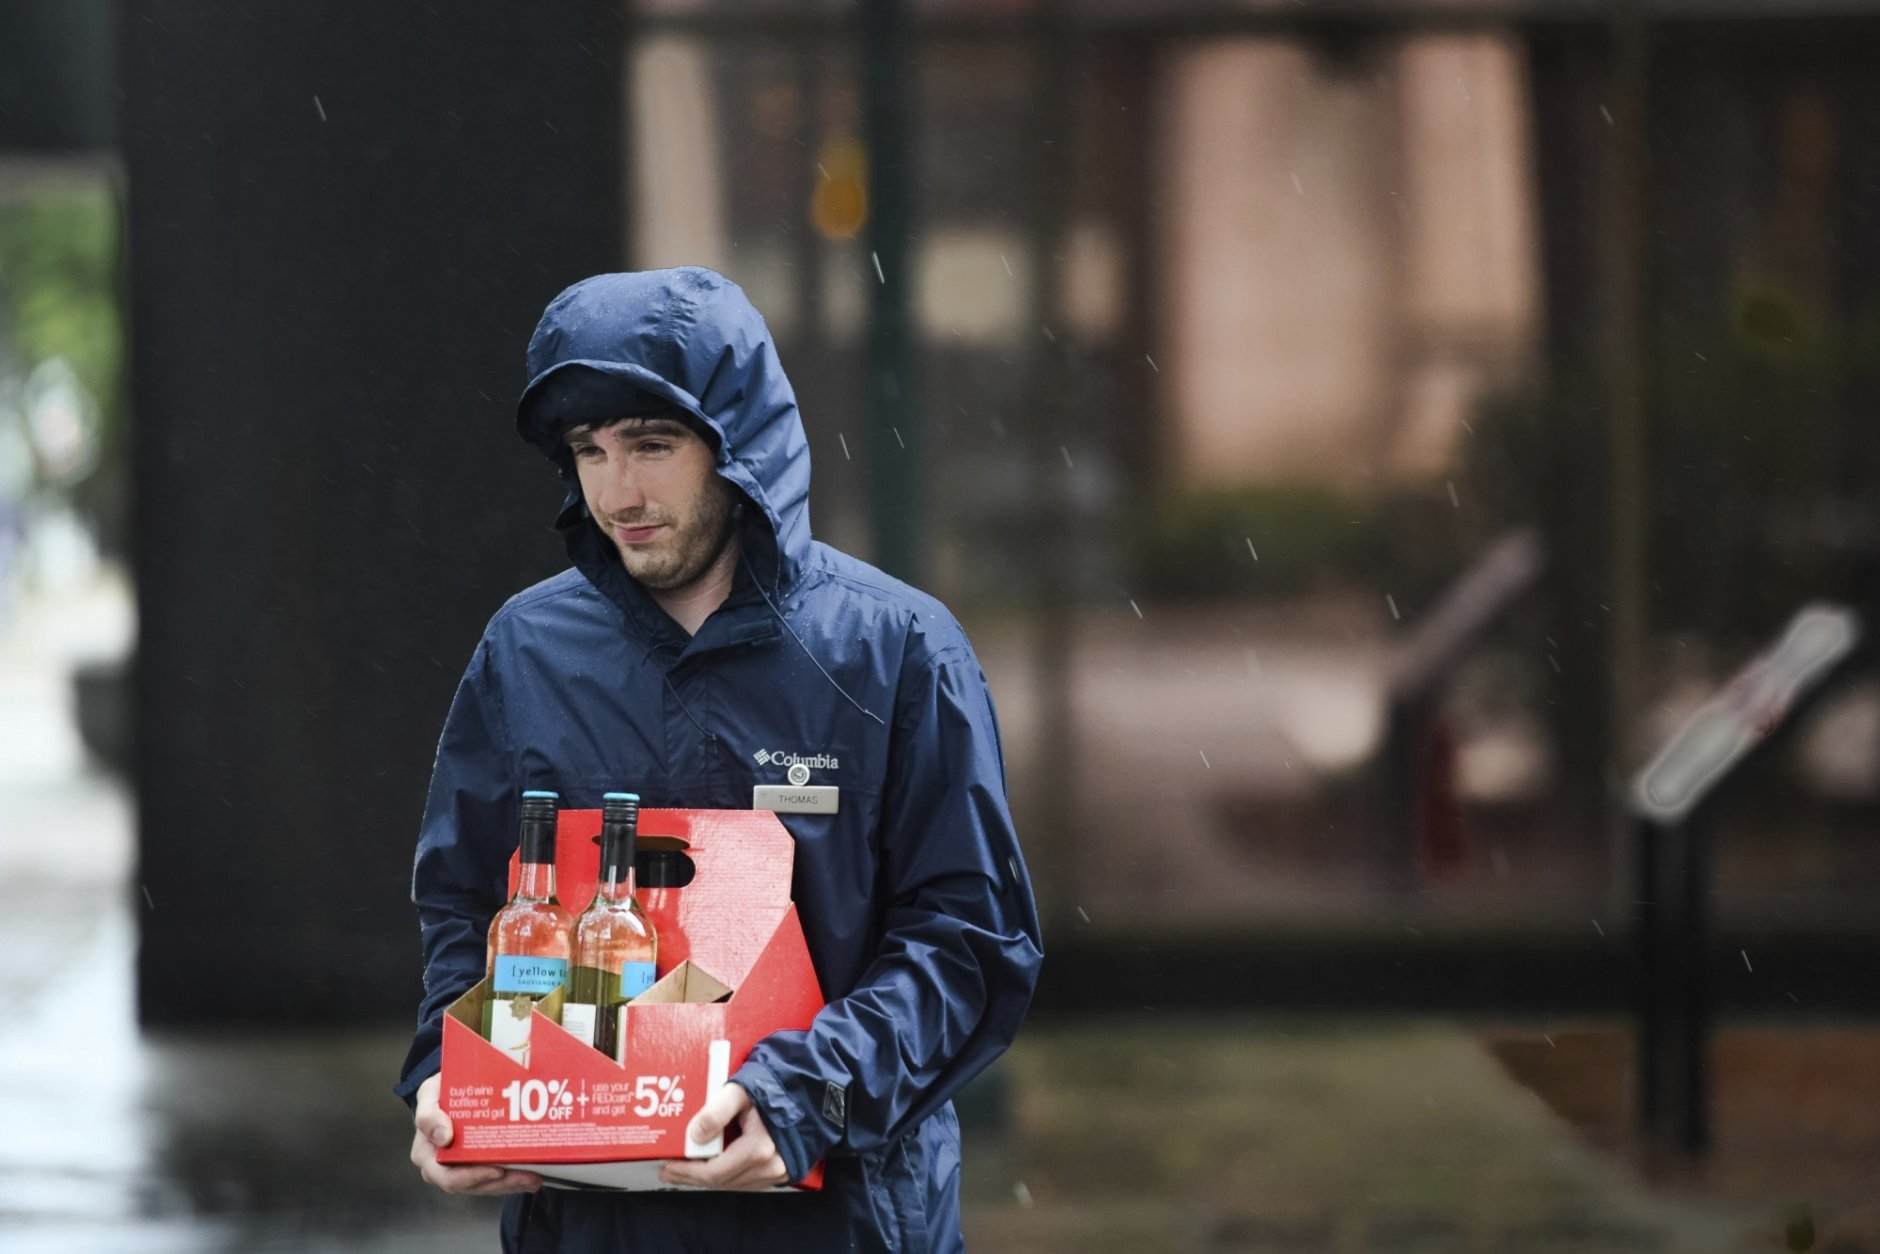 A young man carries bottles of wine down the sidewalk as the remnants of Hurricane Florence slowly move across the East Coast Saturday, Sept. 15, 2018, in Columbia, S.C. (AP Photo/Sean Rayford)